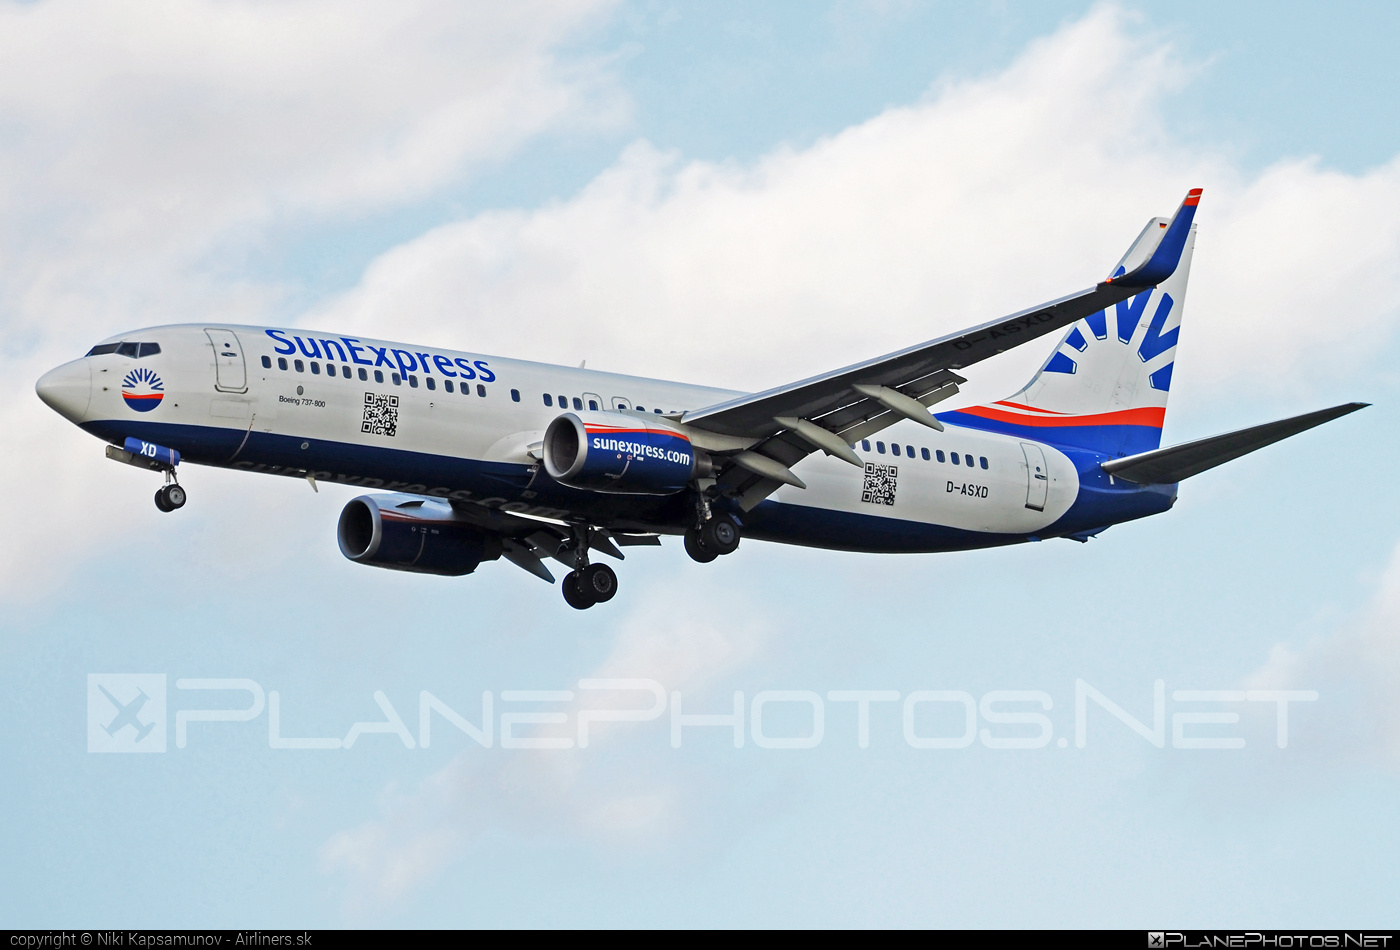 Boeing 737-800 - D-ASXD operated by SunExpress Deutschland #b737 #b737nextgen #b737ng #boeing #boeing737 #sunexpress #sunexpressdeutschland